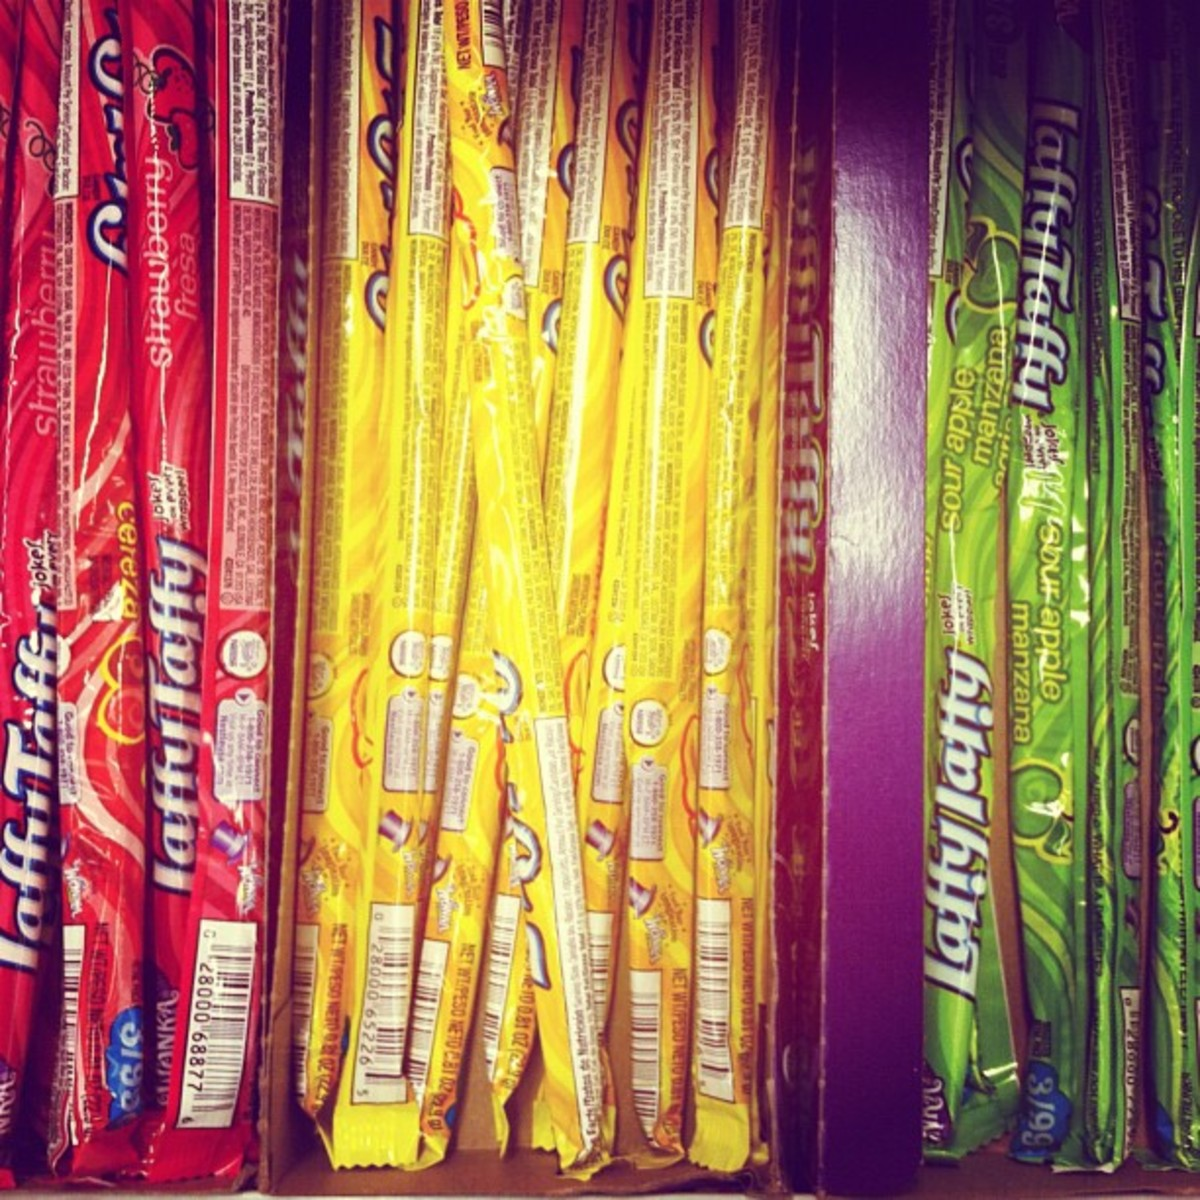 Laffy Taffy has many variations.